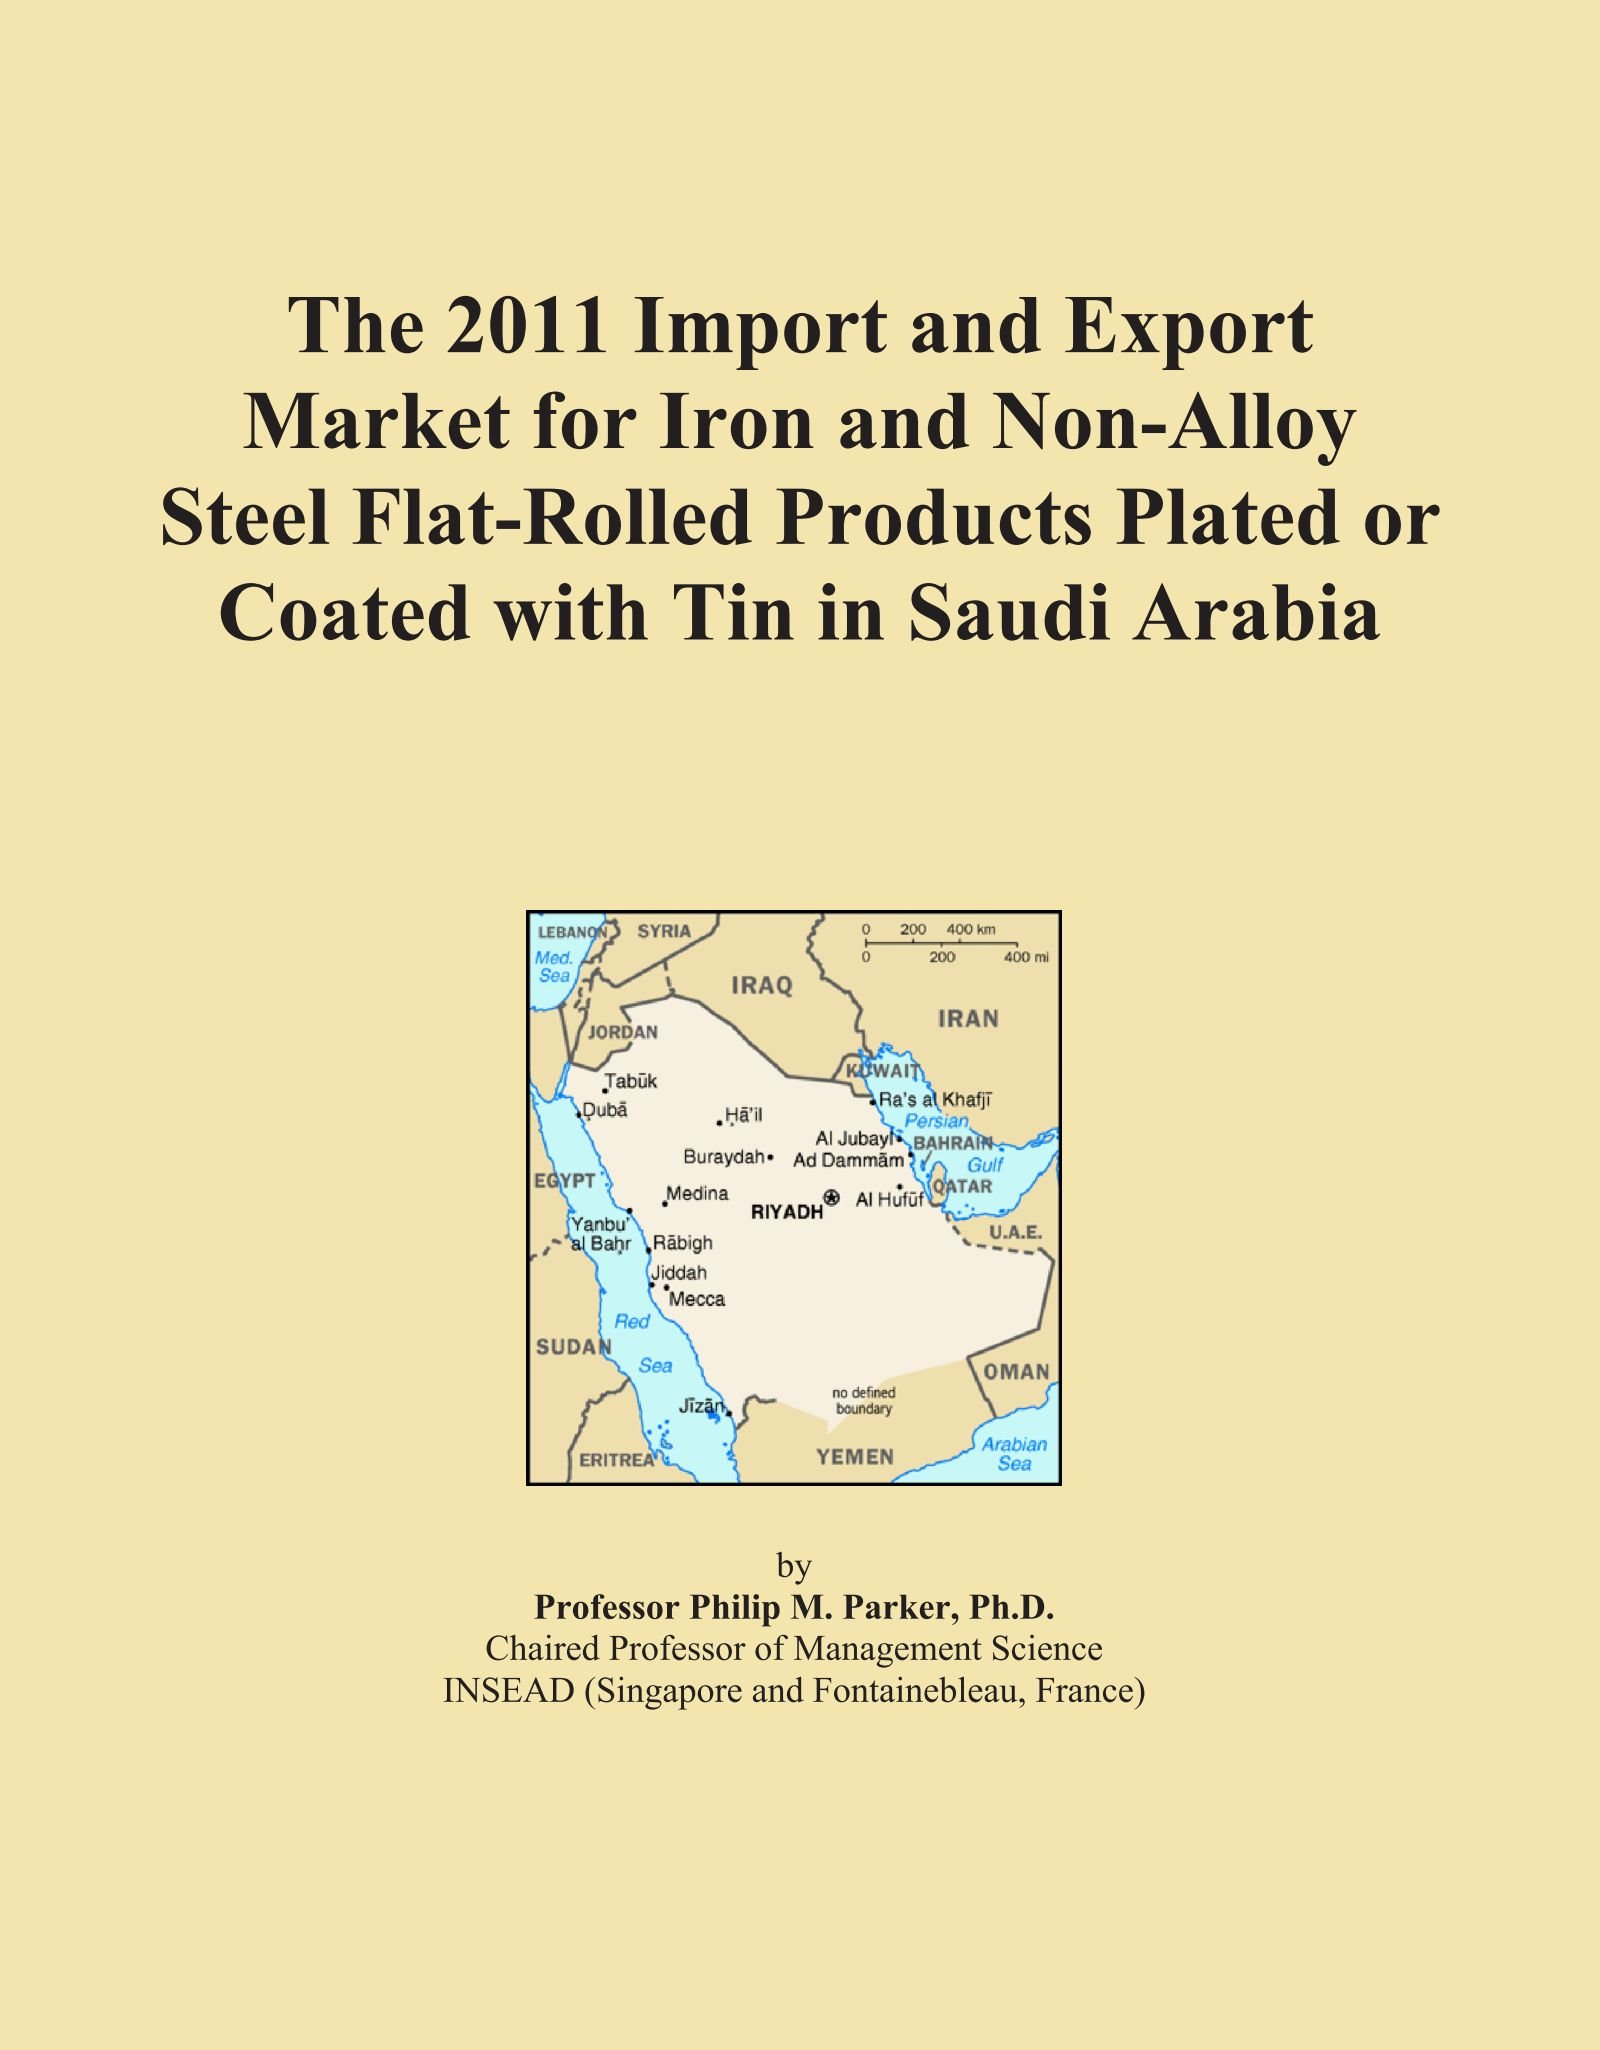 The 2011 Import and Export Market for Iron and Non-Alloy Steel Flat-Rolled Products Plated or Coated with Tin in Saudi Arabia PDF